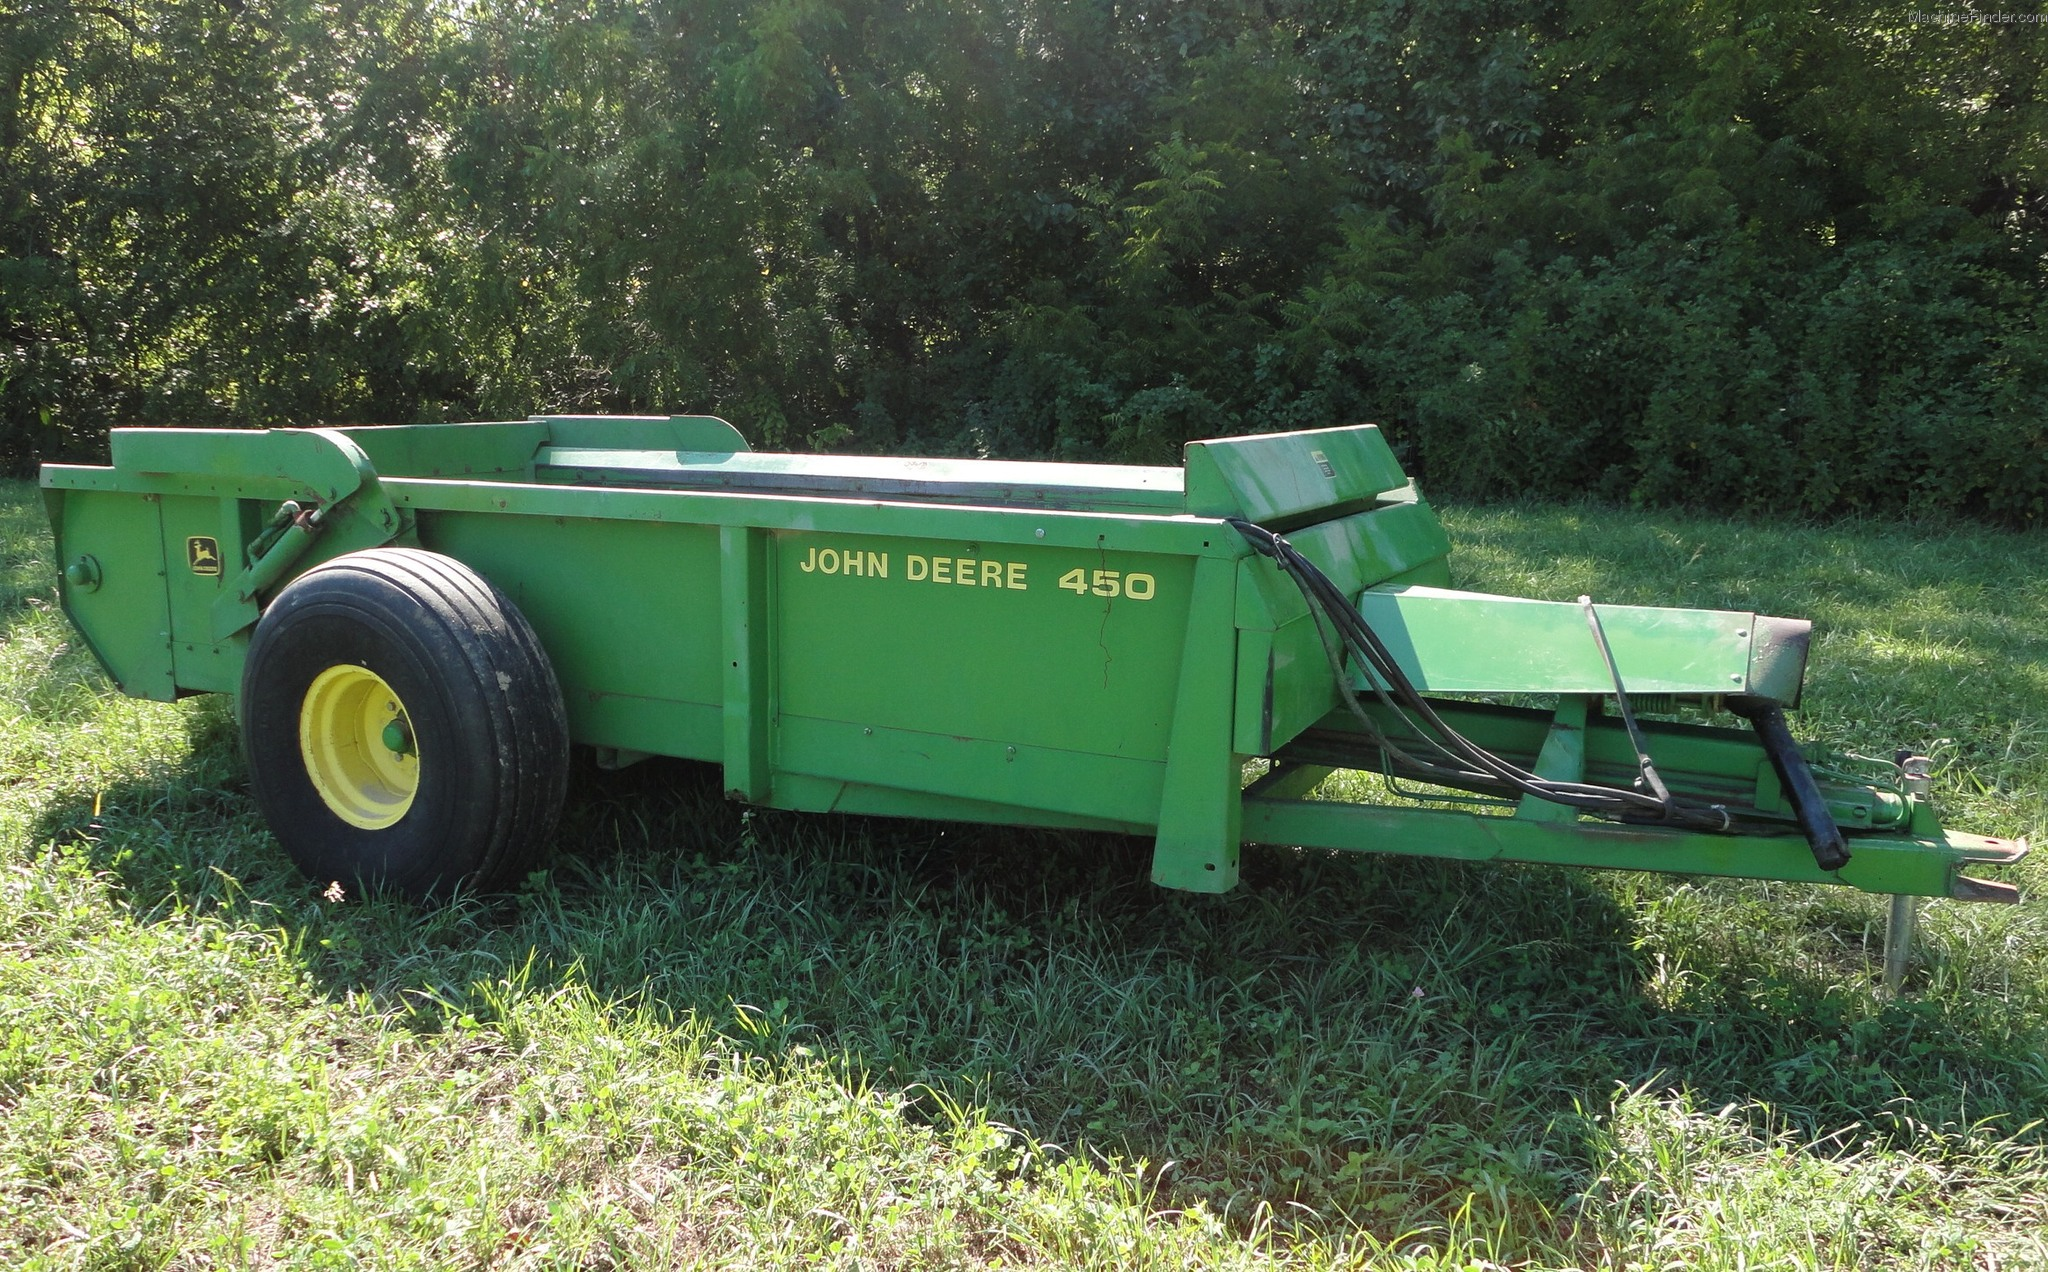 John Deere Service Code F 450 Galapagos Mendels Escape Iso 5525 Wiring Diagram Here You Can Download File 310sg 315sg Backhoe Loader Repair Manual 2shared Gives An Excellent Opportunity To Store Your Files